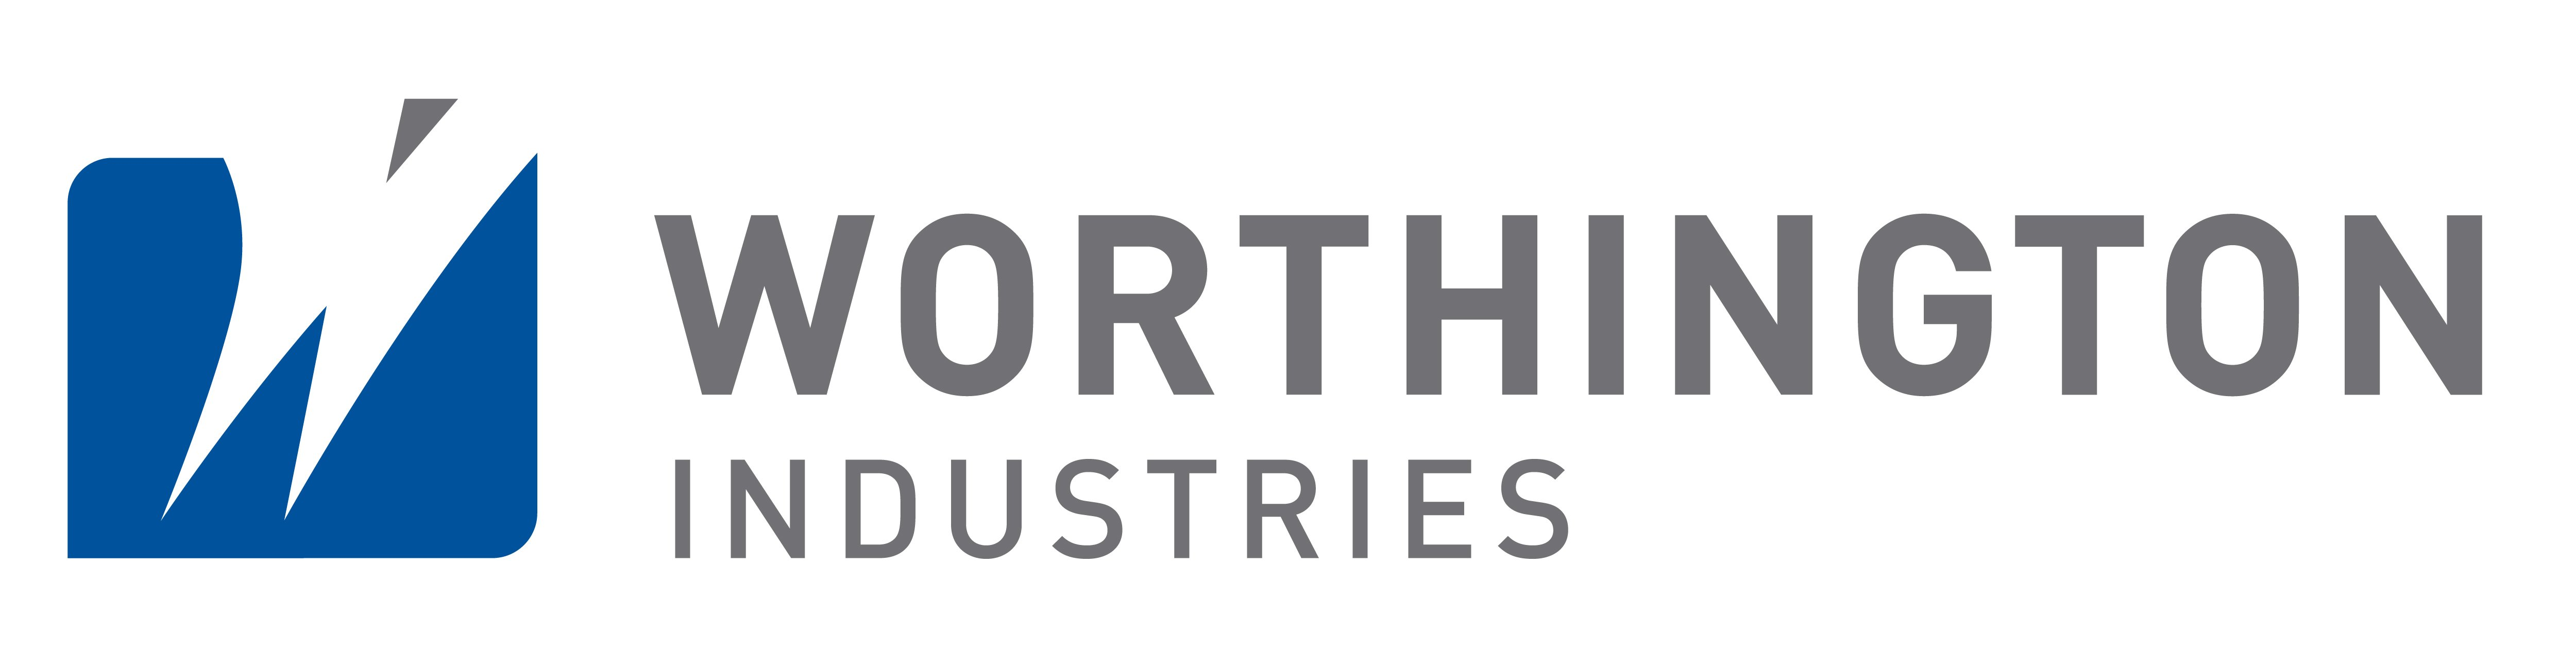 Worthington Industries logo